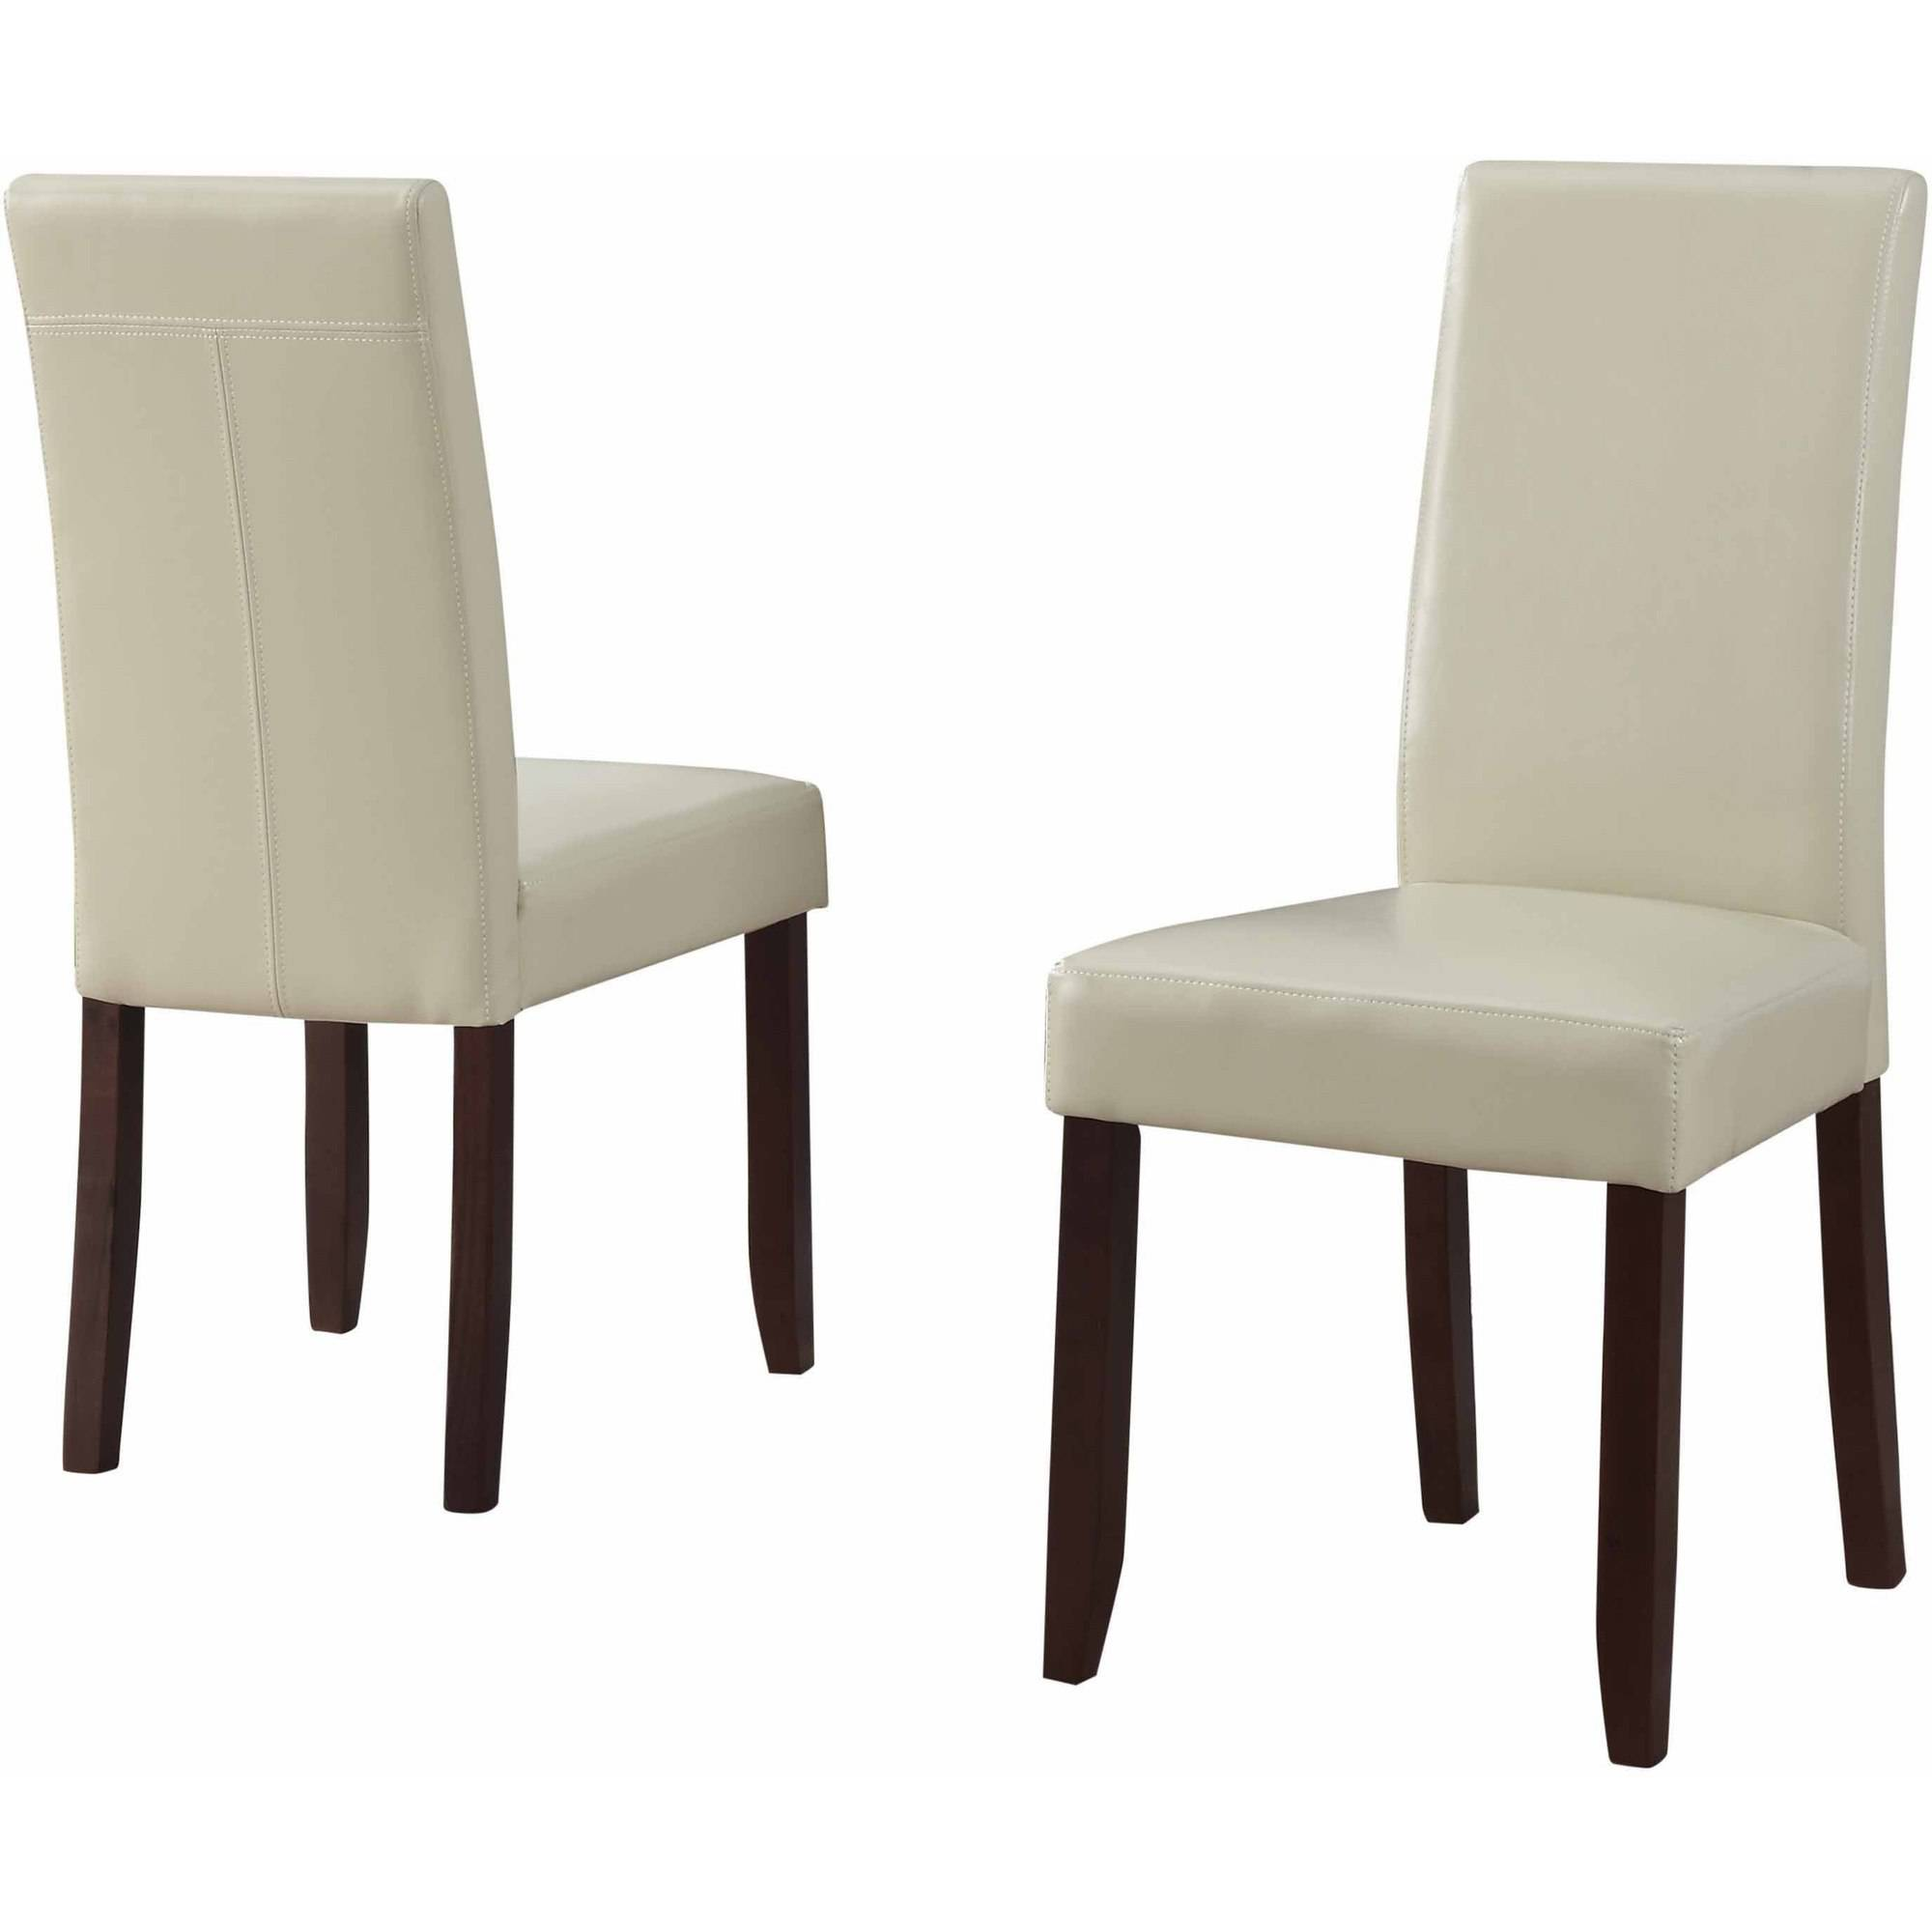 dining chairs $100-$150 MXFJABQ